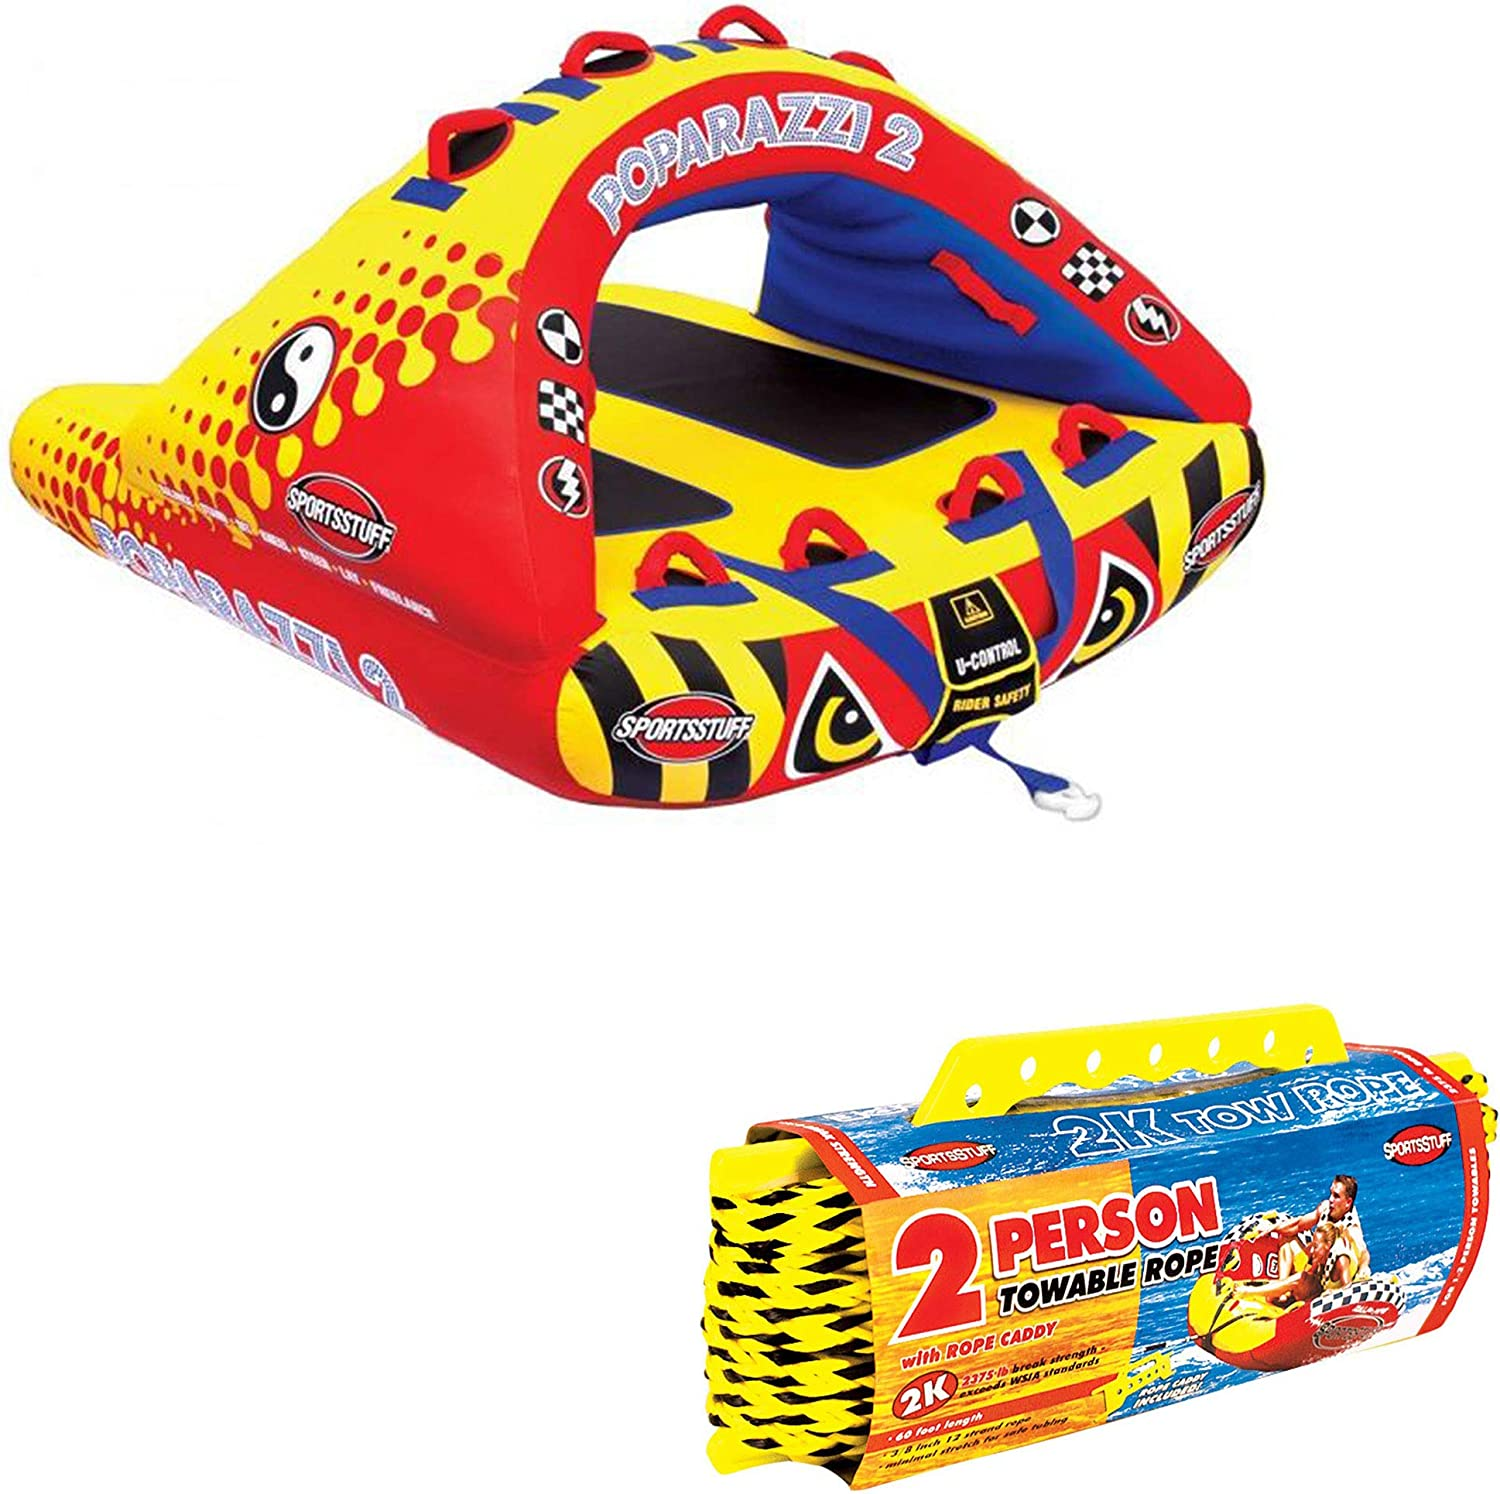 Airhead Poparazzi 2 Double Rider WingShaped Towable Tube w  2 Person Tow Rope